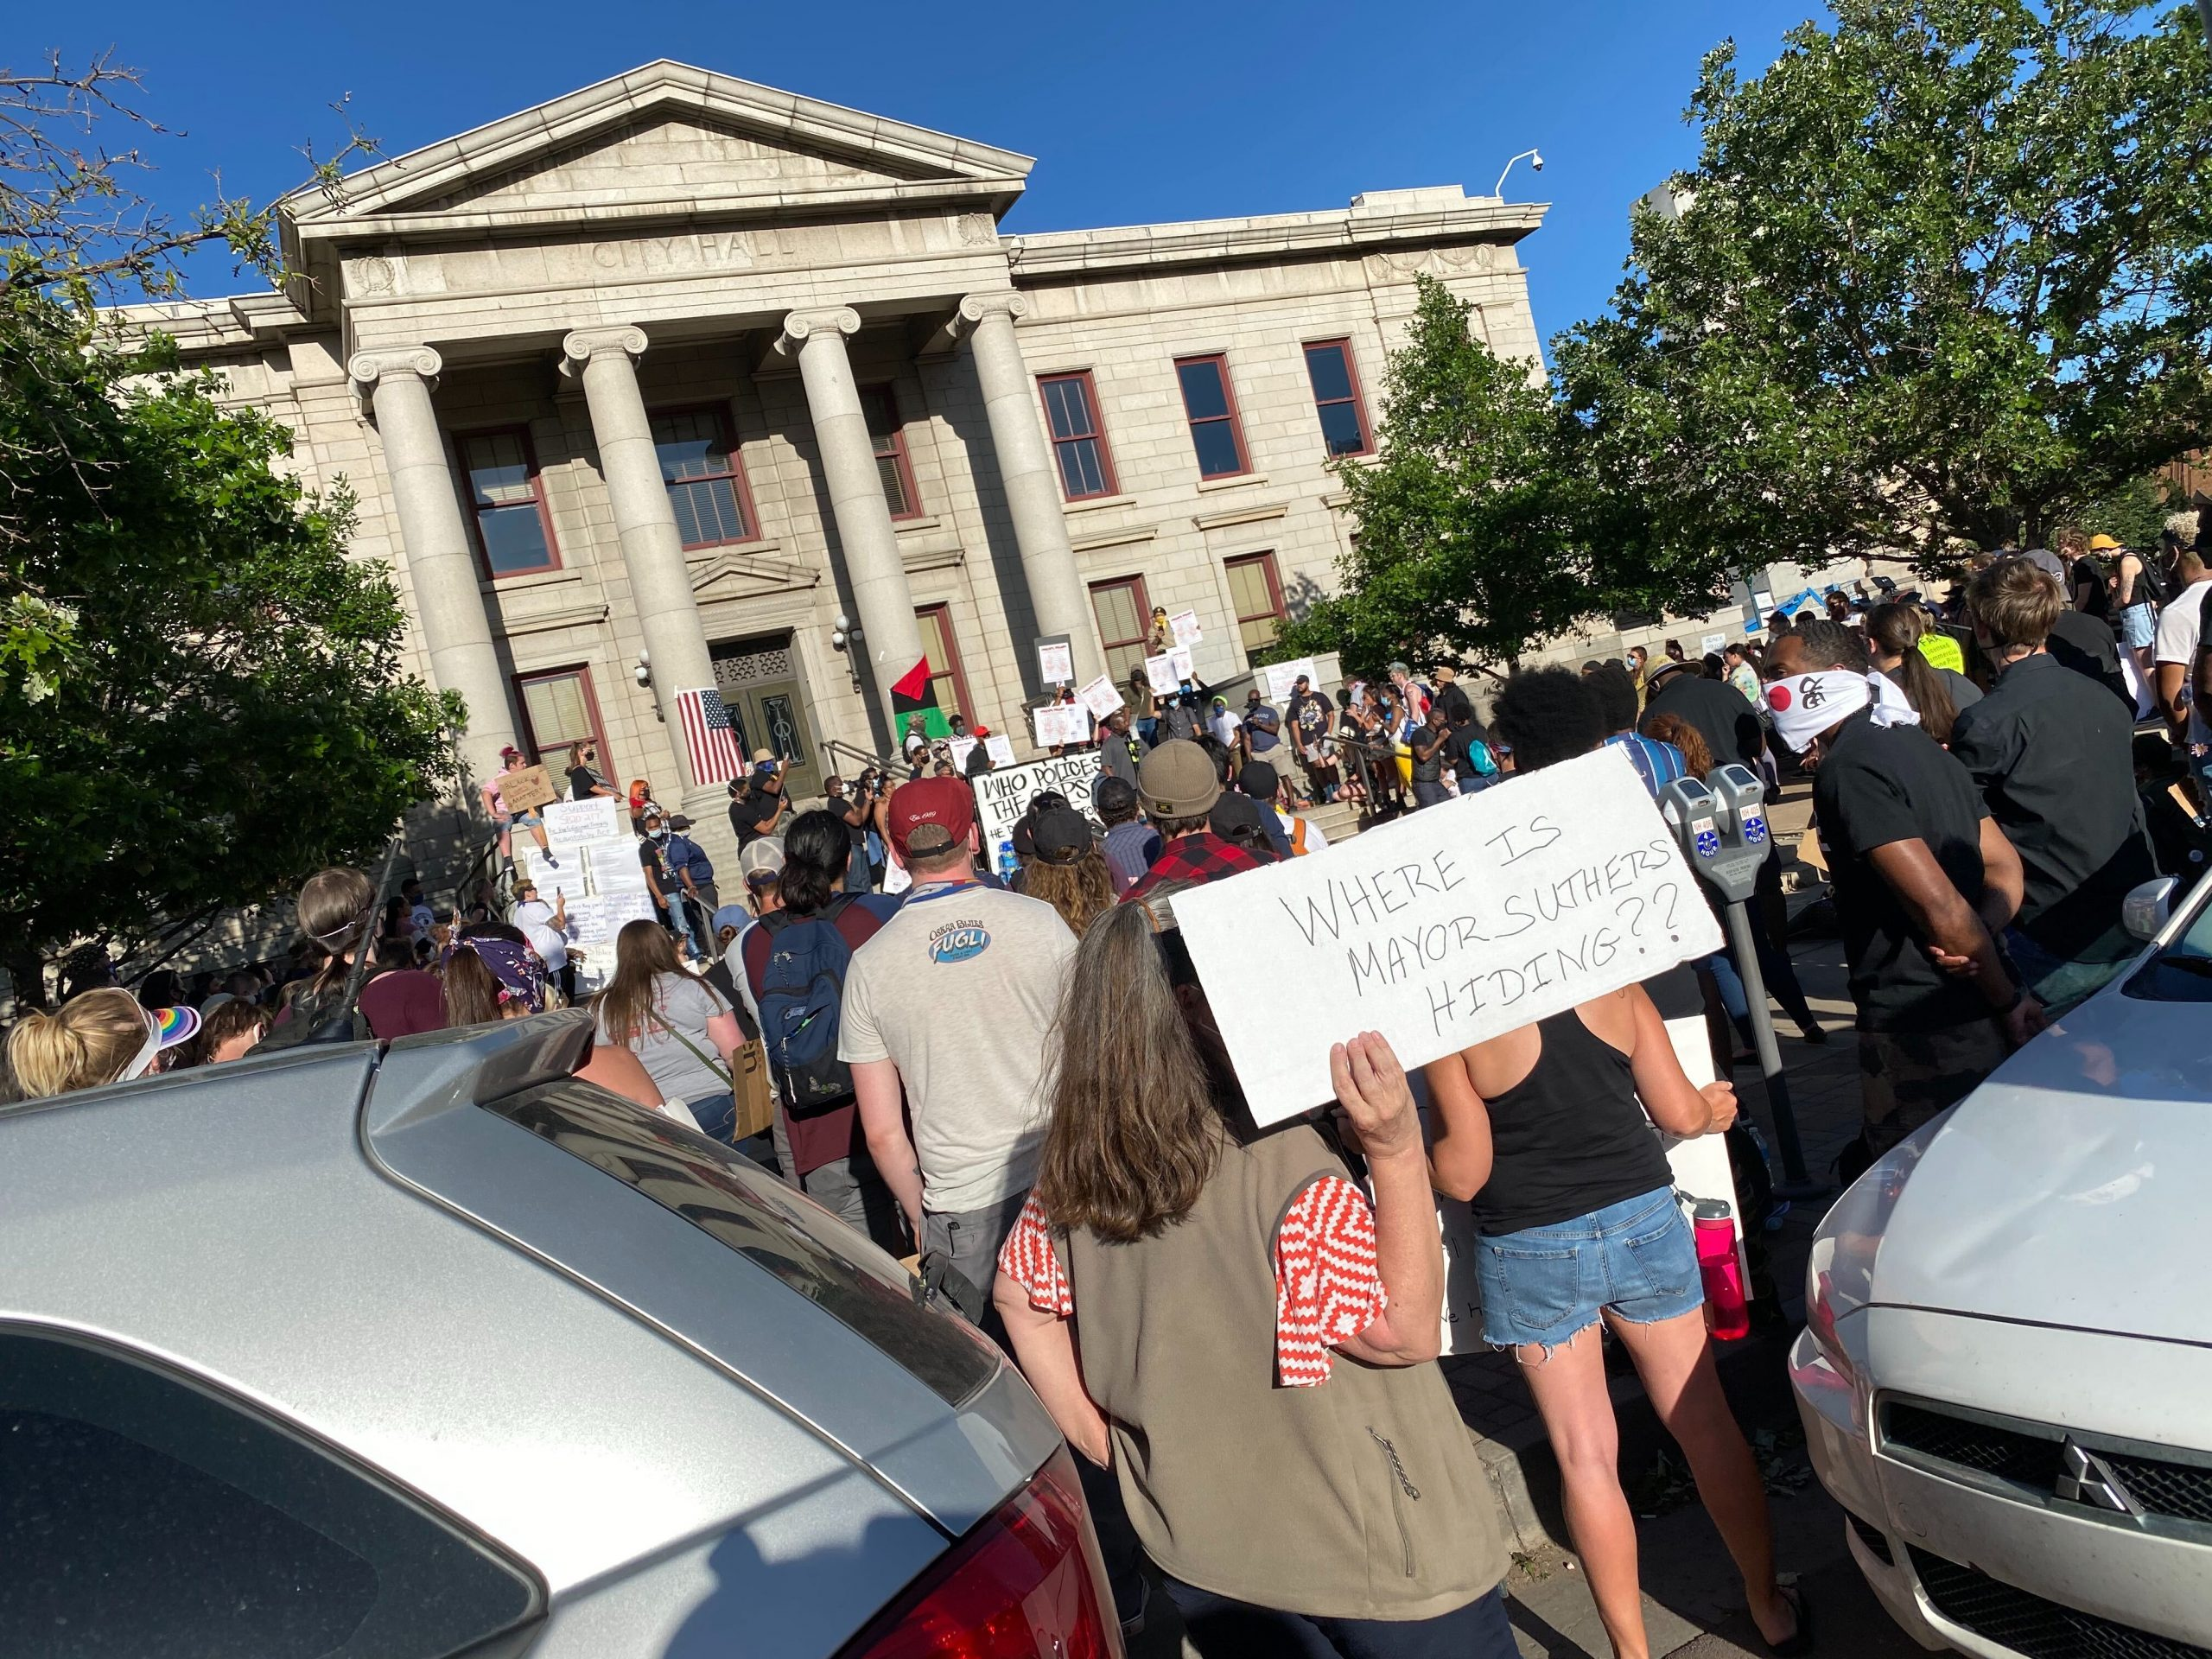 Protesters on Sunday, June 7 continue gathering at City Hall to denounce police brutality.